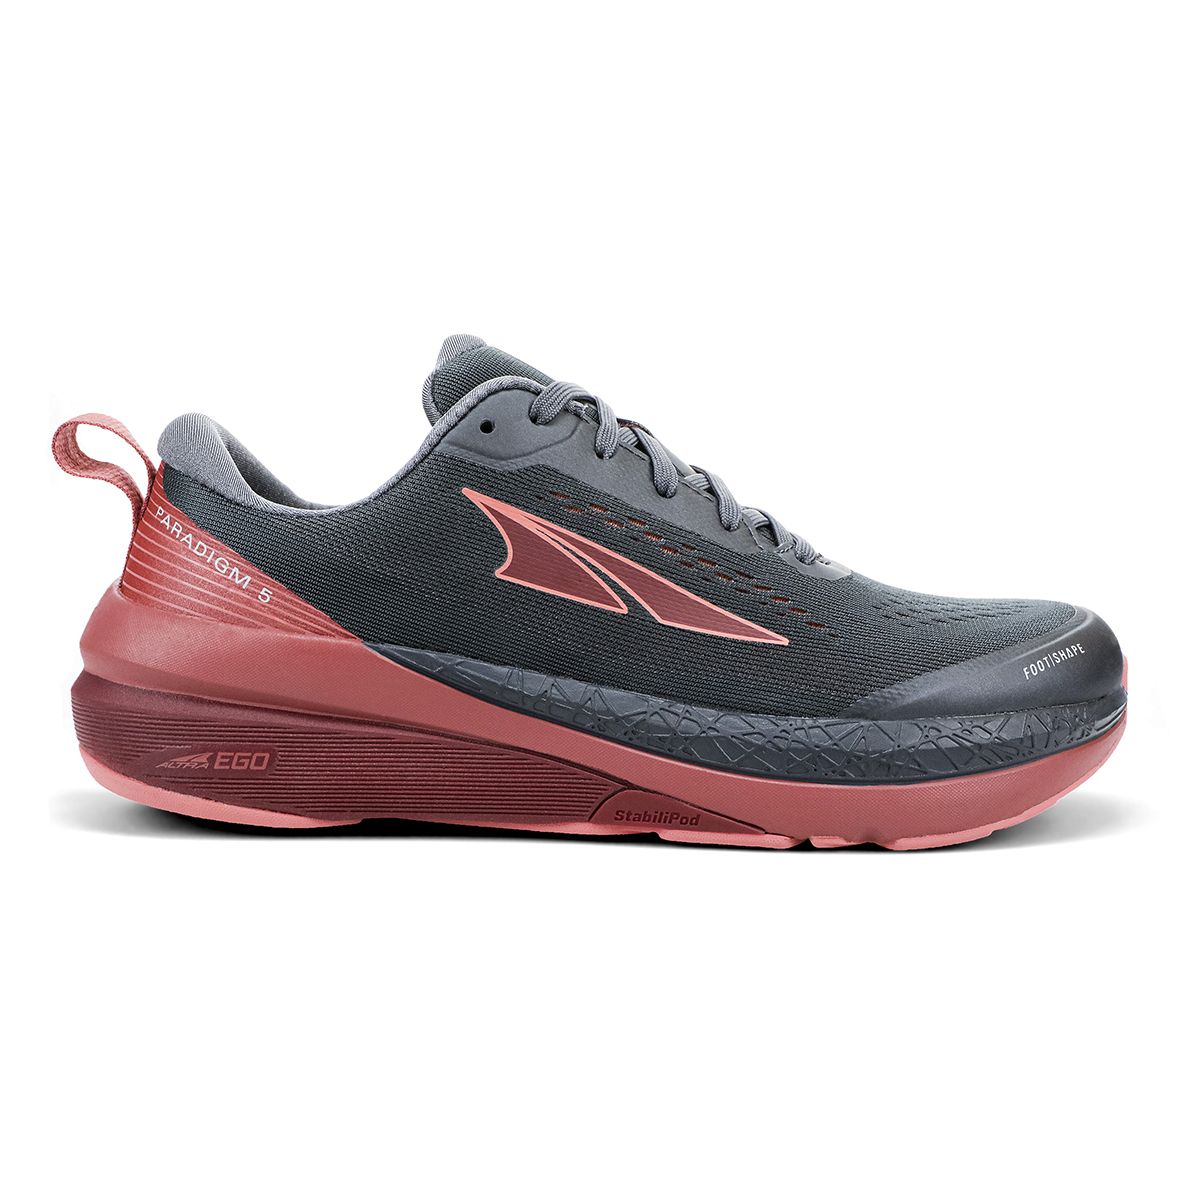 Women's Altra Paradigm 5 Running Shoe - Color: Gray/Coral/Port - Size: 8 - Width: Regular, Gray/Coral/Port, large, image 1